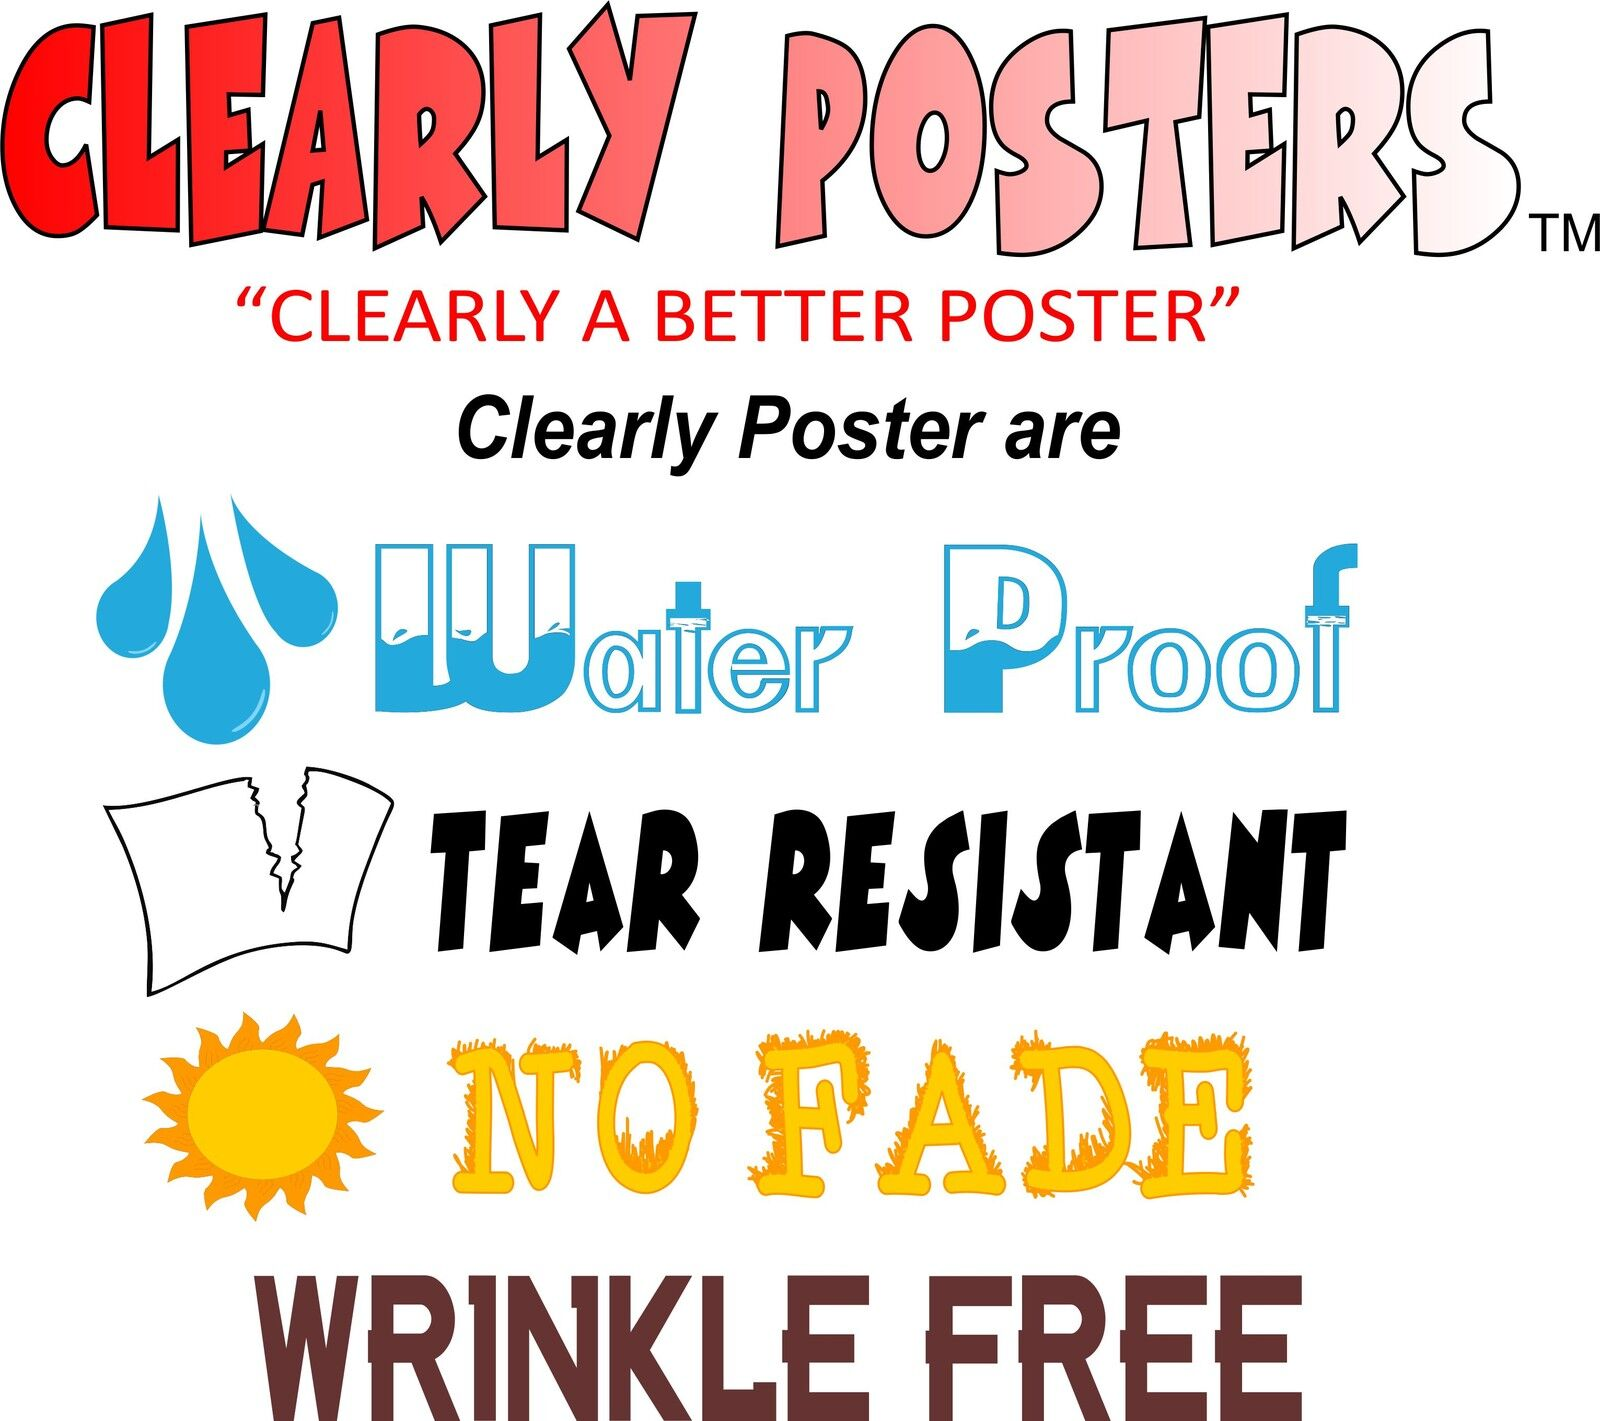 Clearly Posters